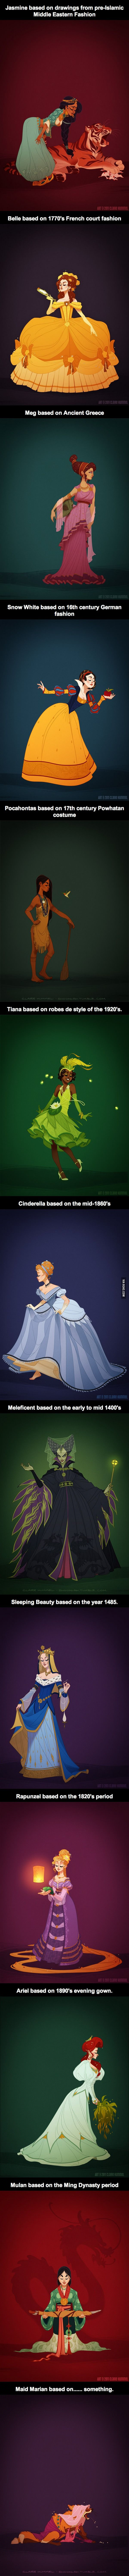 Disney Princesses Based on Historical time periods. All good except the last one, which is the best